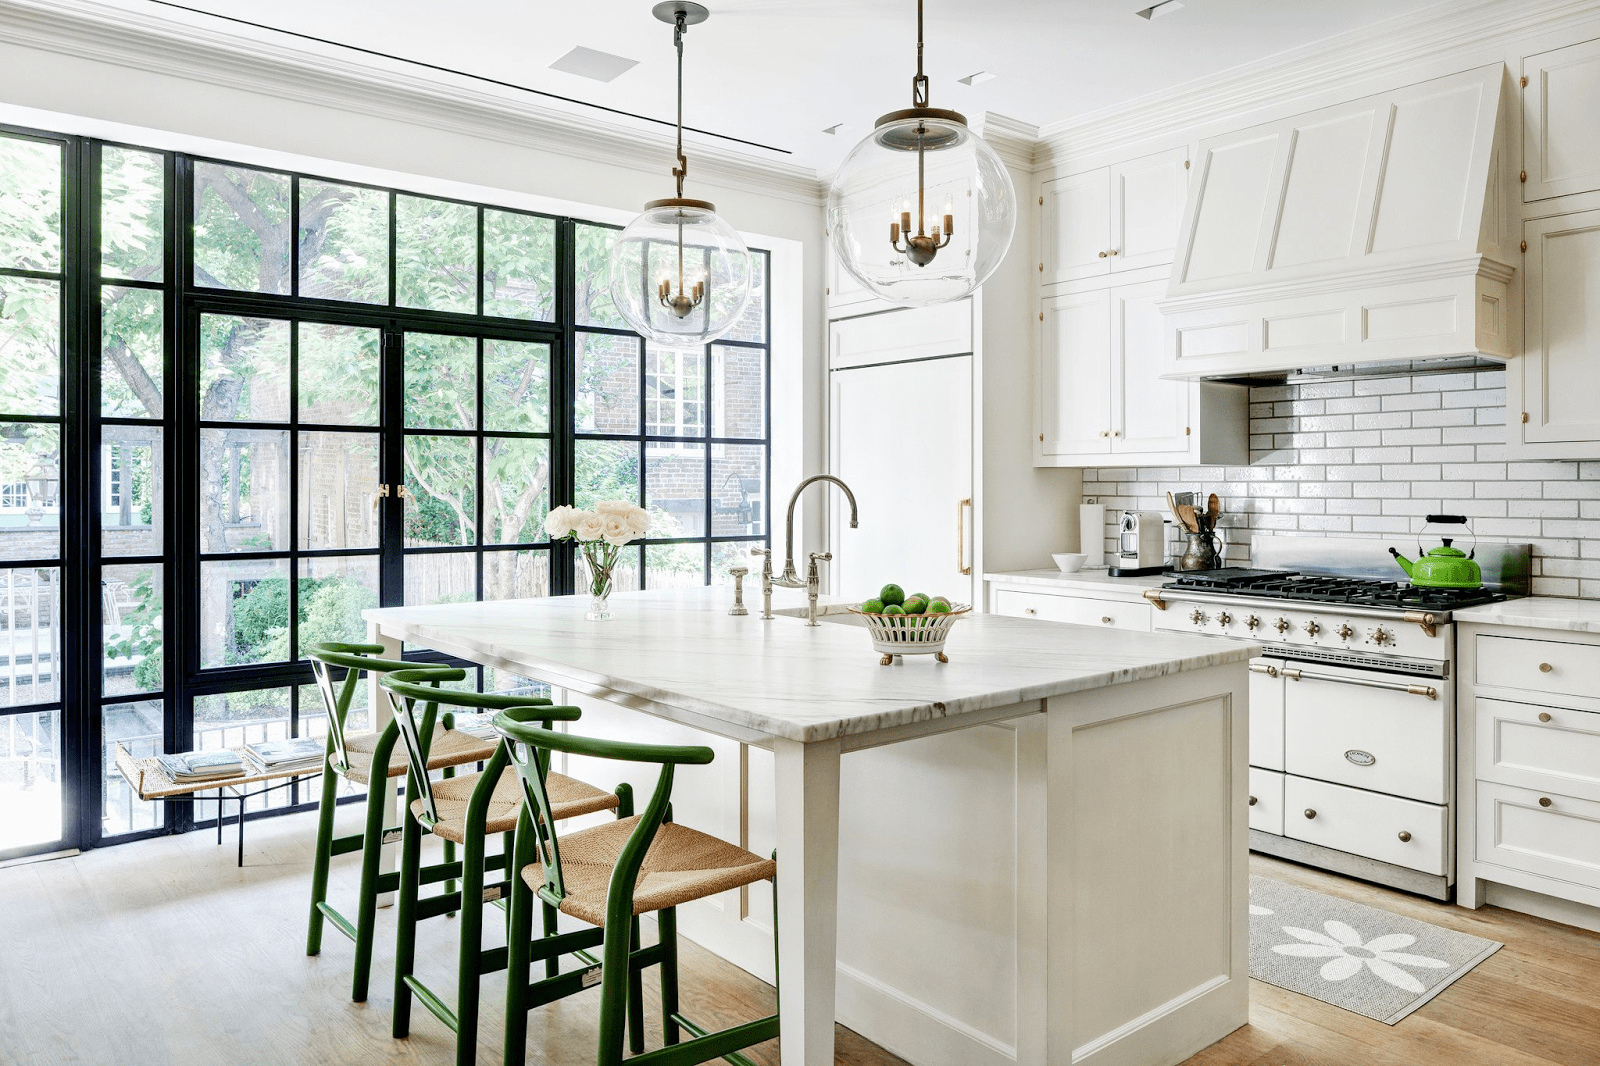 WELL DESIGNED KITCHEN - TOP 5 MUST HAVES